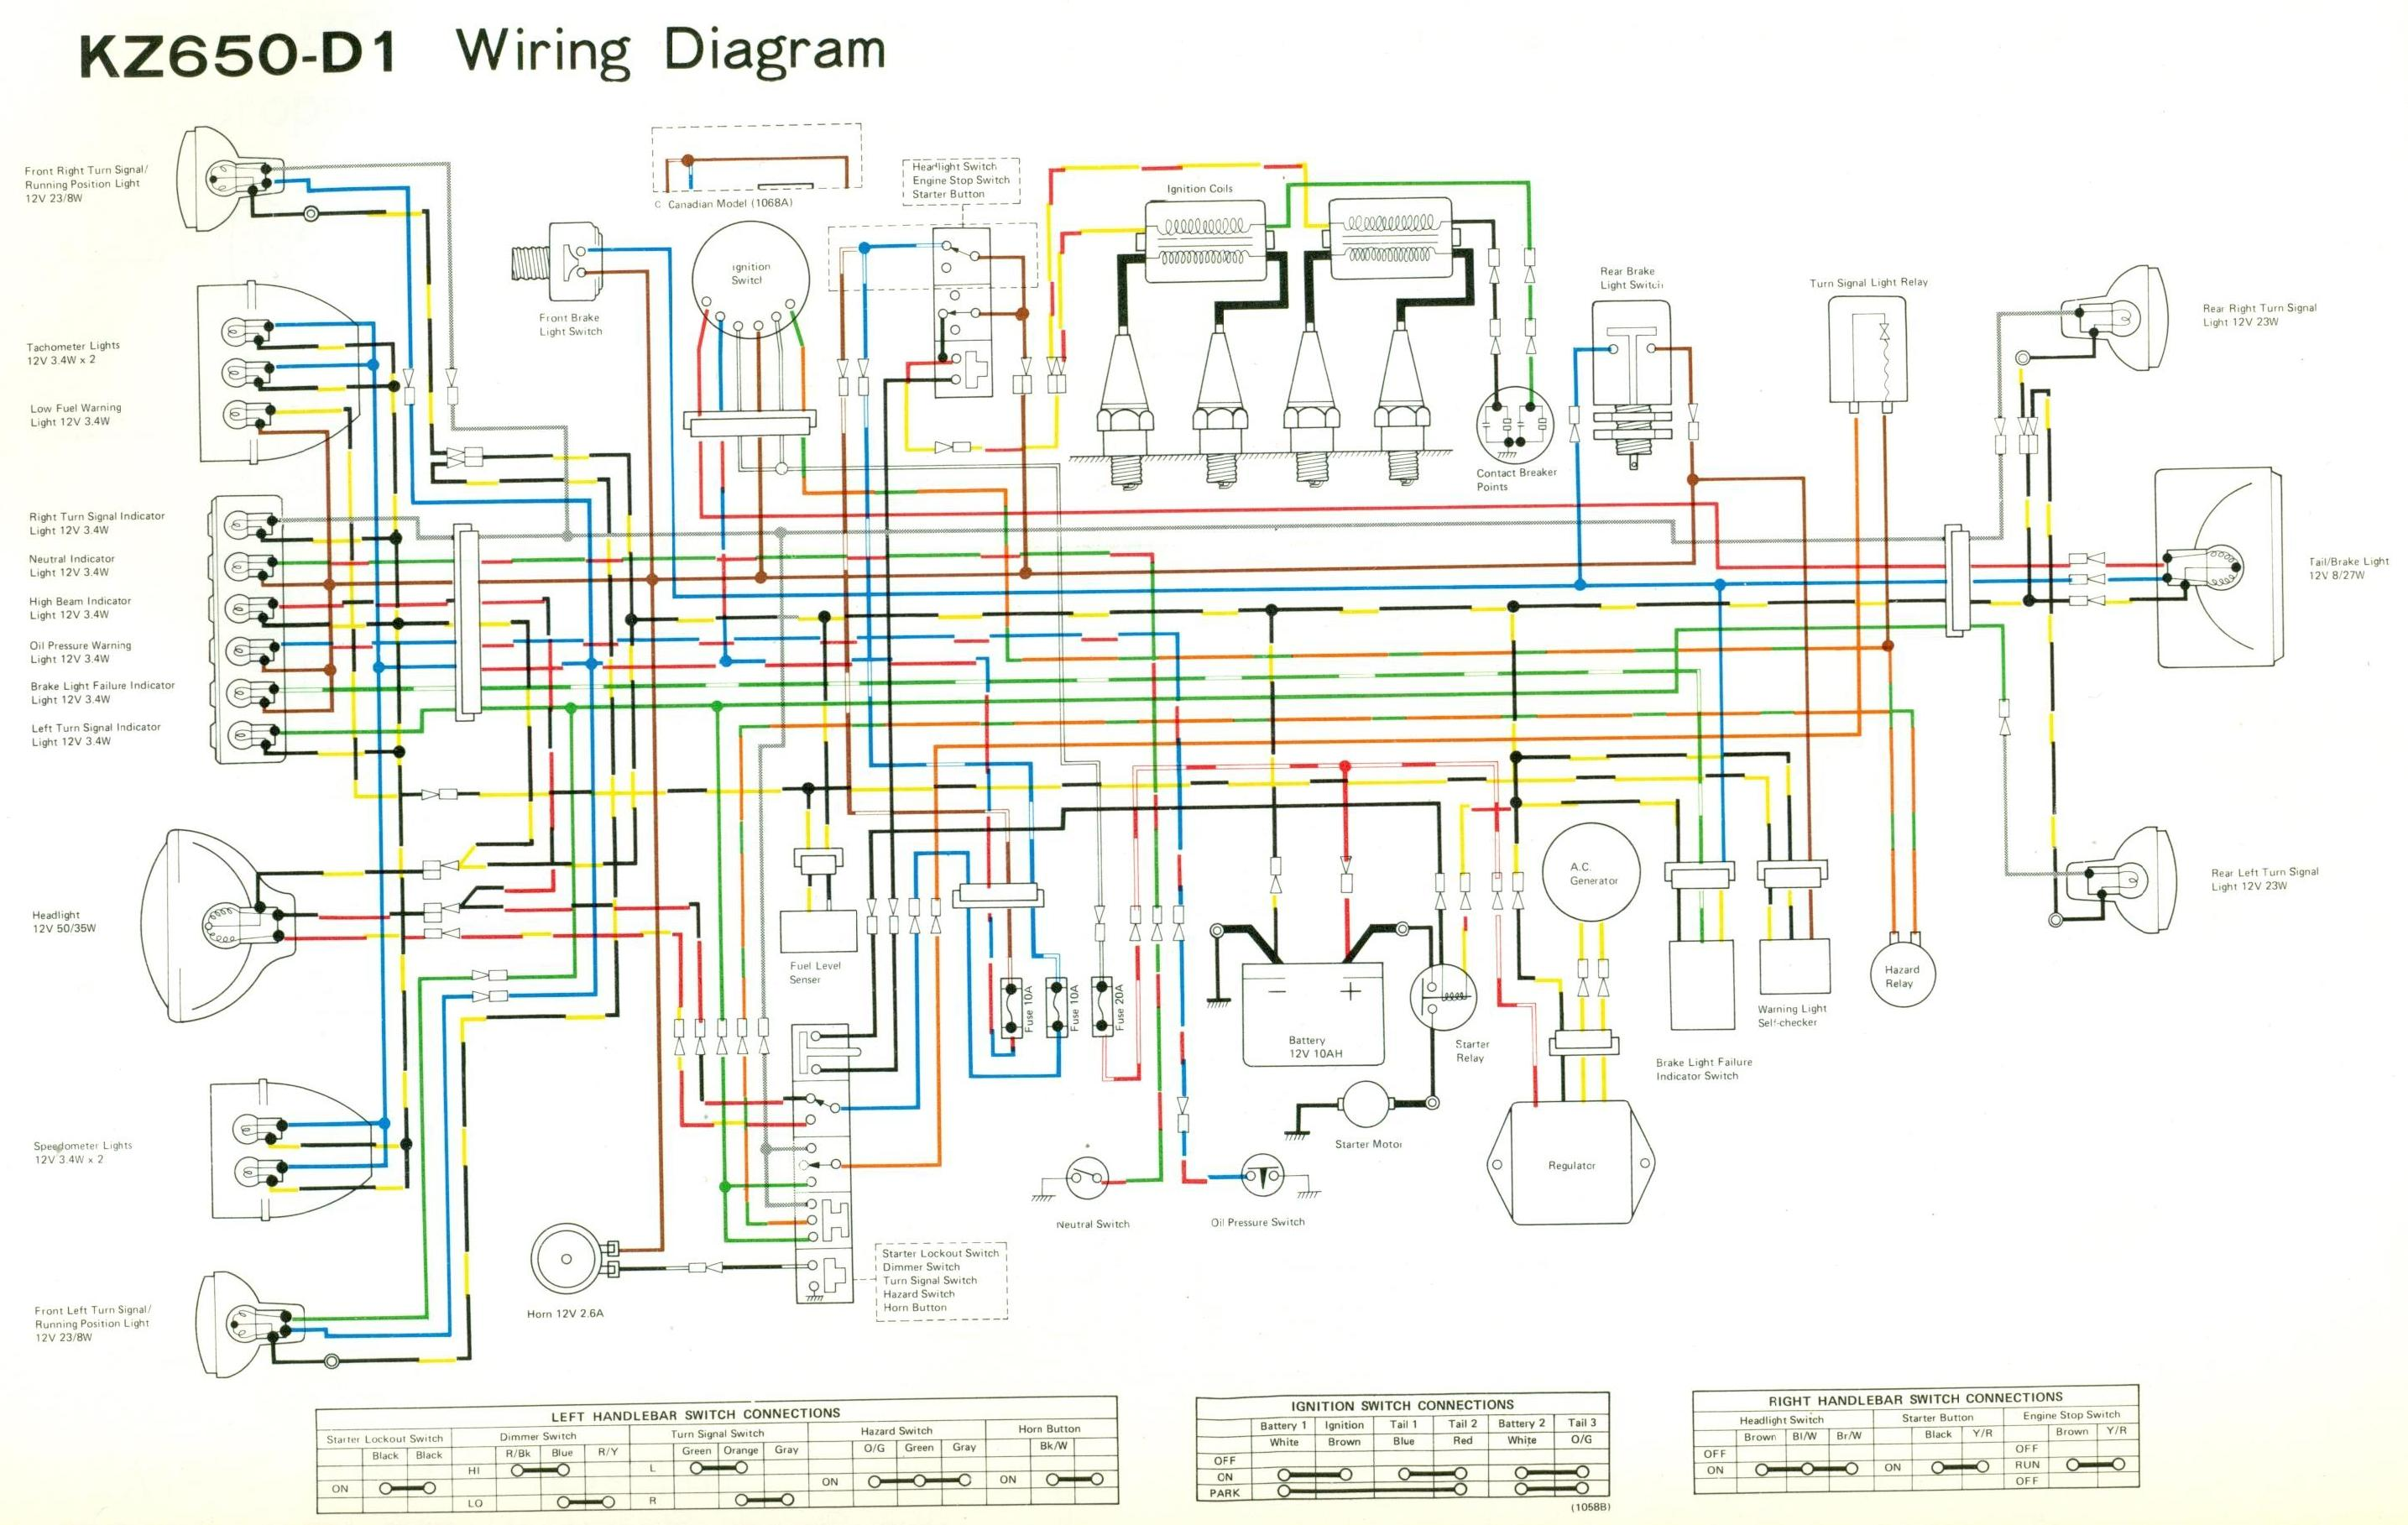 wiring diagrams rh oregonmotorcycleparts com BMW E36 Wiring Diagrams BMW 2002 Wiring Diagram PDF